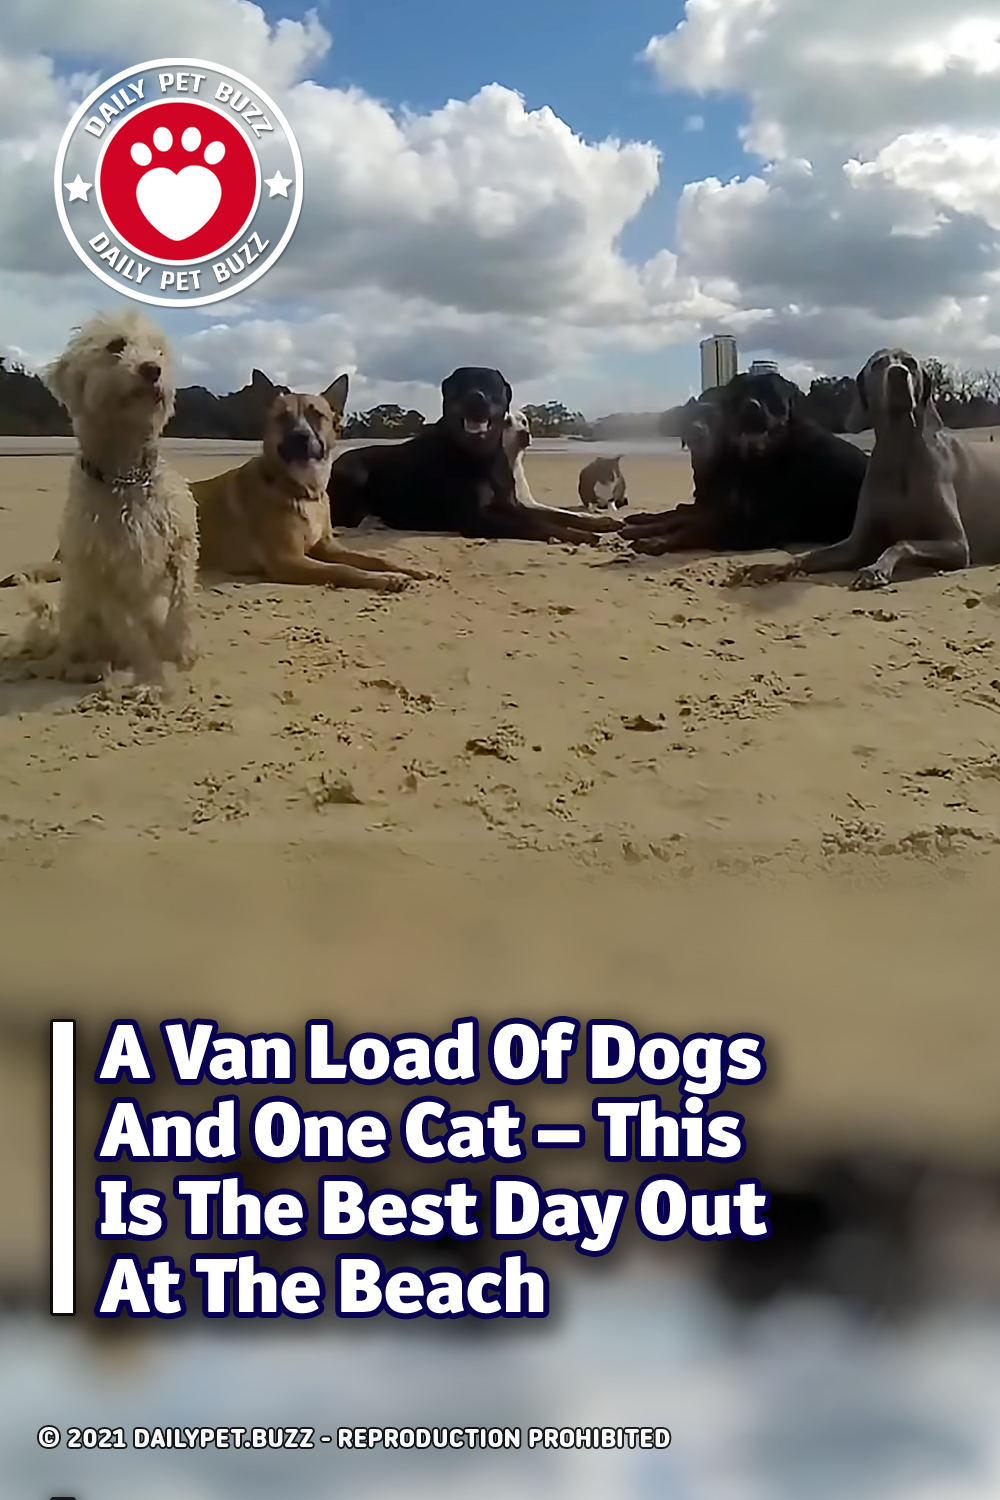 A Van Load Of Dogs And One Cat – This Is The Best Day Out At The Beach